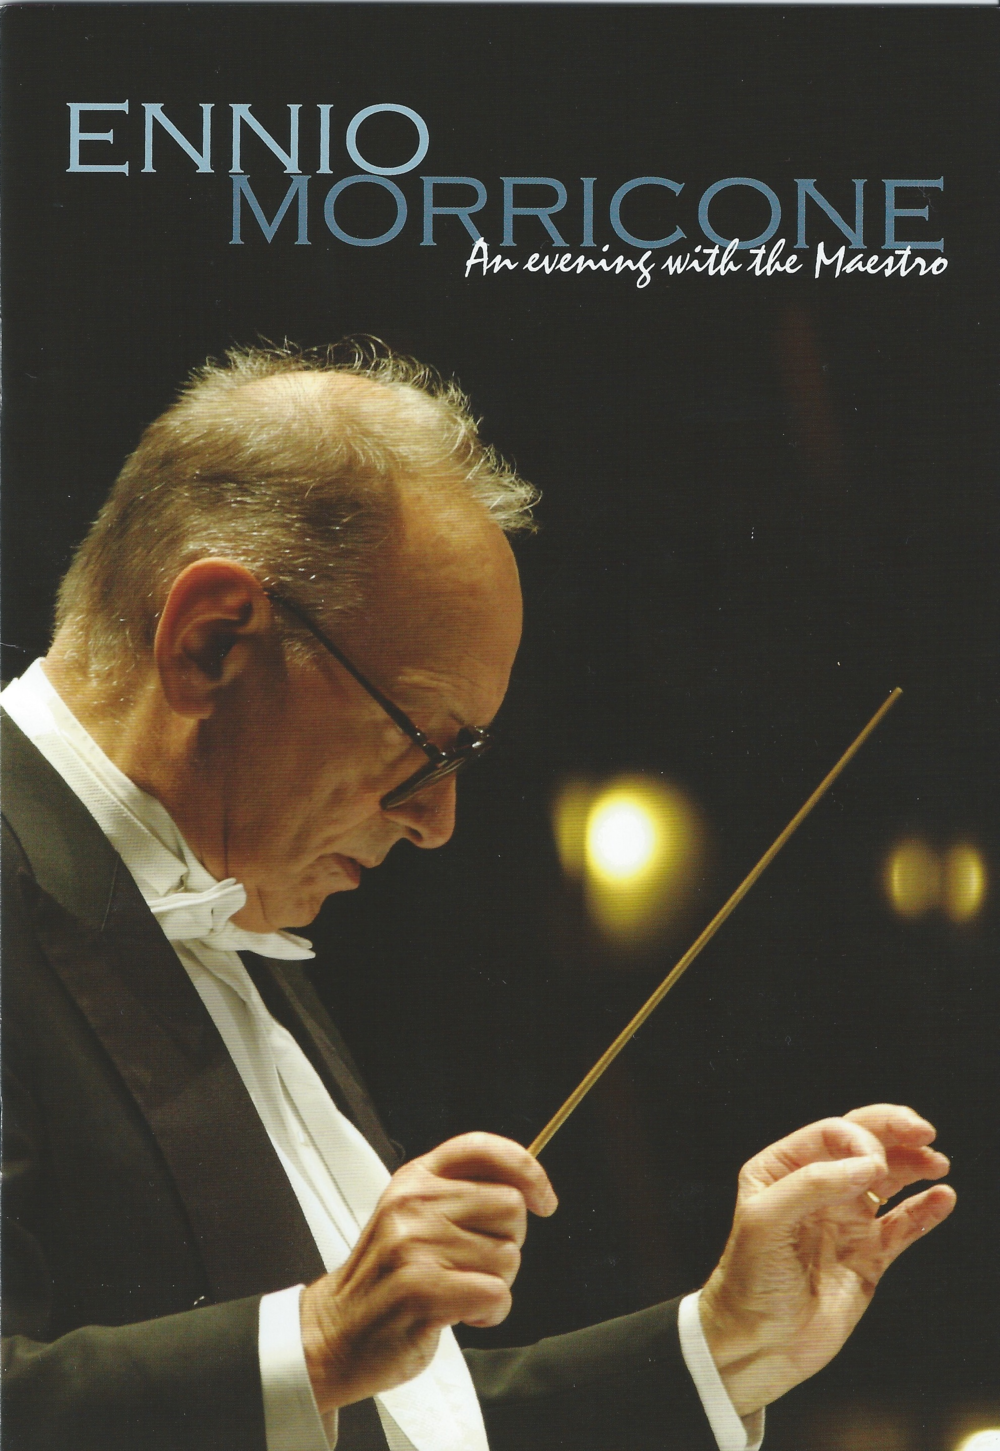 Morricone cropped.png